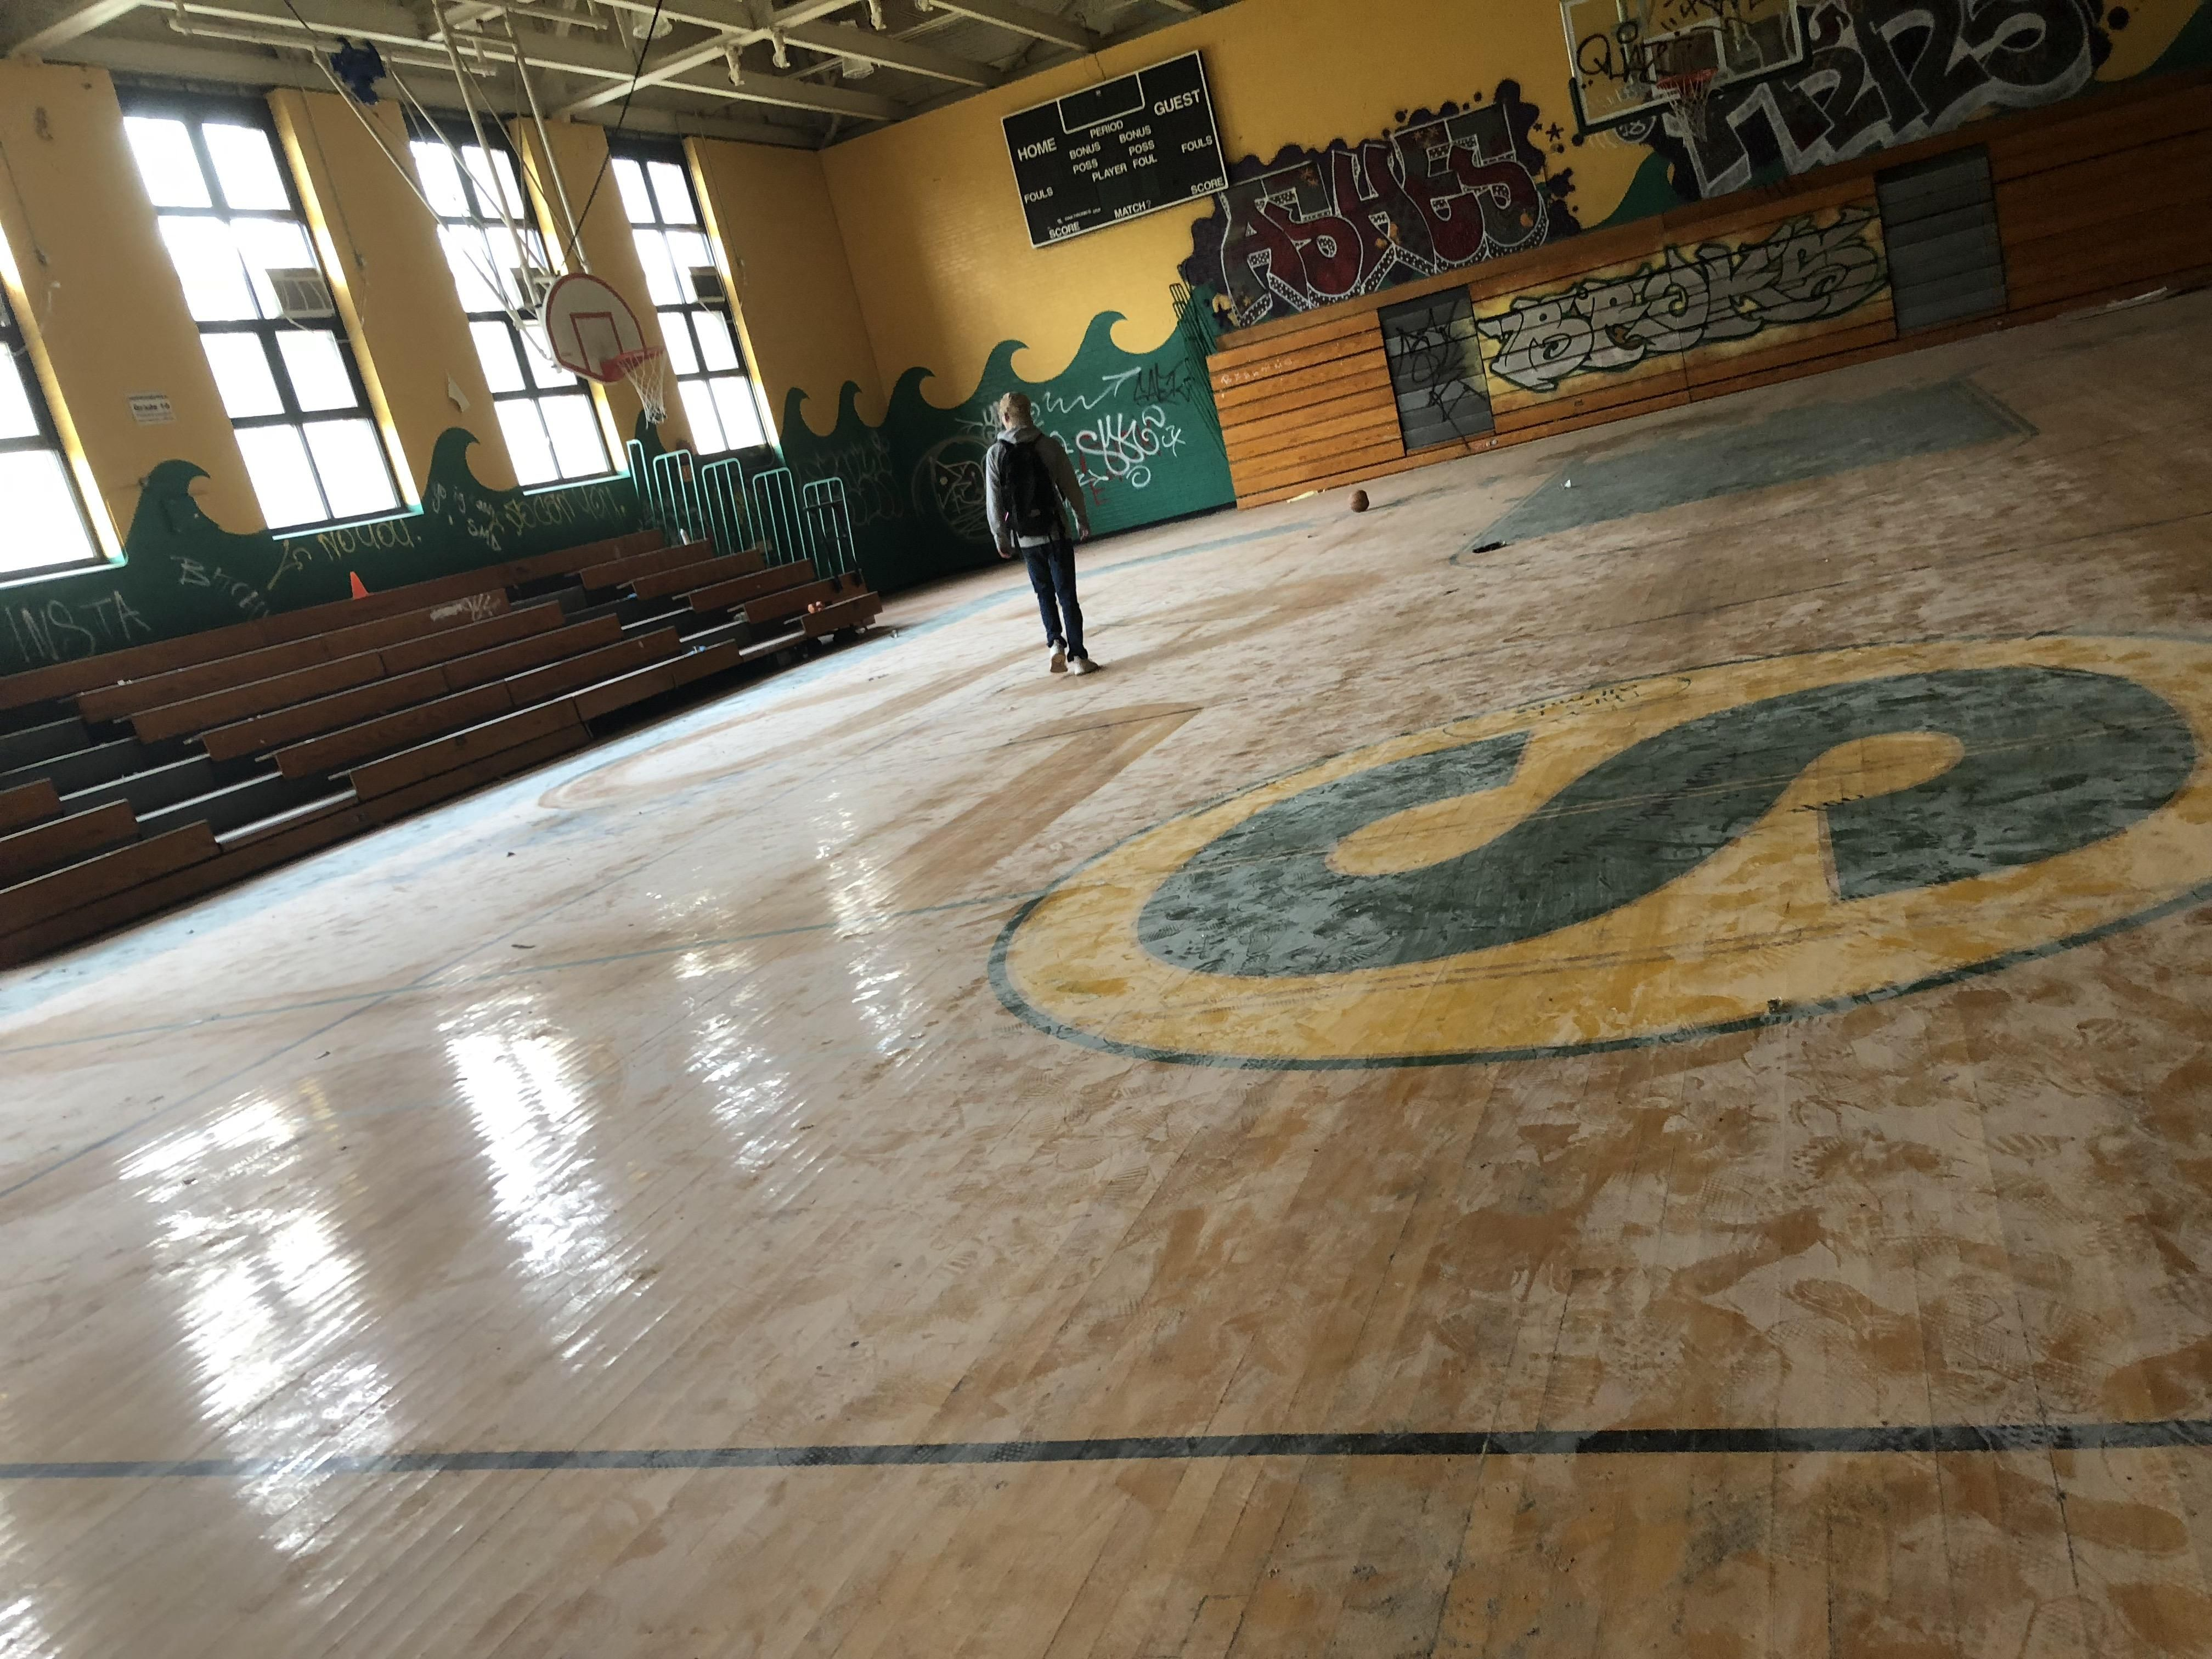 Abandoned Dcps Basketball Powerhouse Which Produced Nba Players Such As Sherman Douglas Elgin Baylor And Ollie Johnson 4032 Elgin Baylor Abandoned Basketball